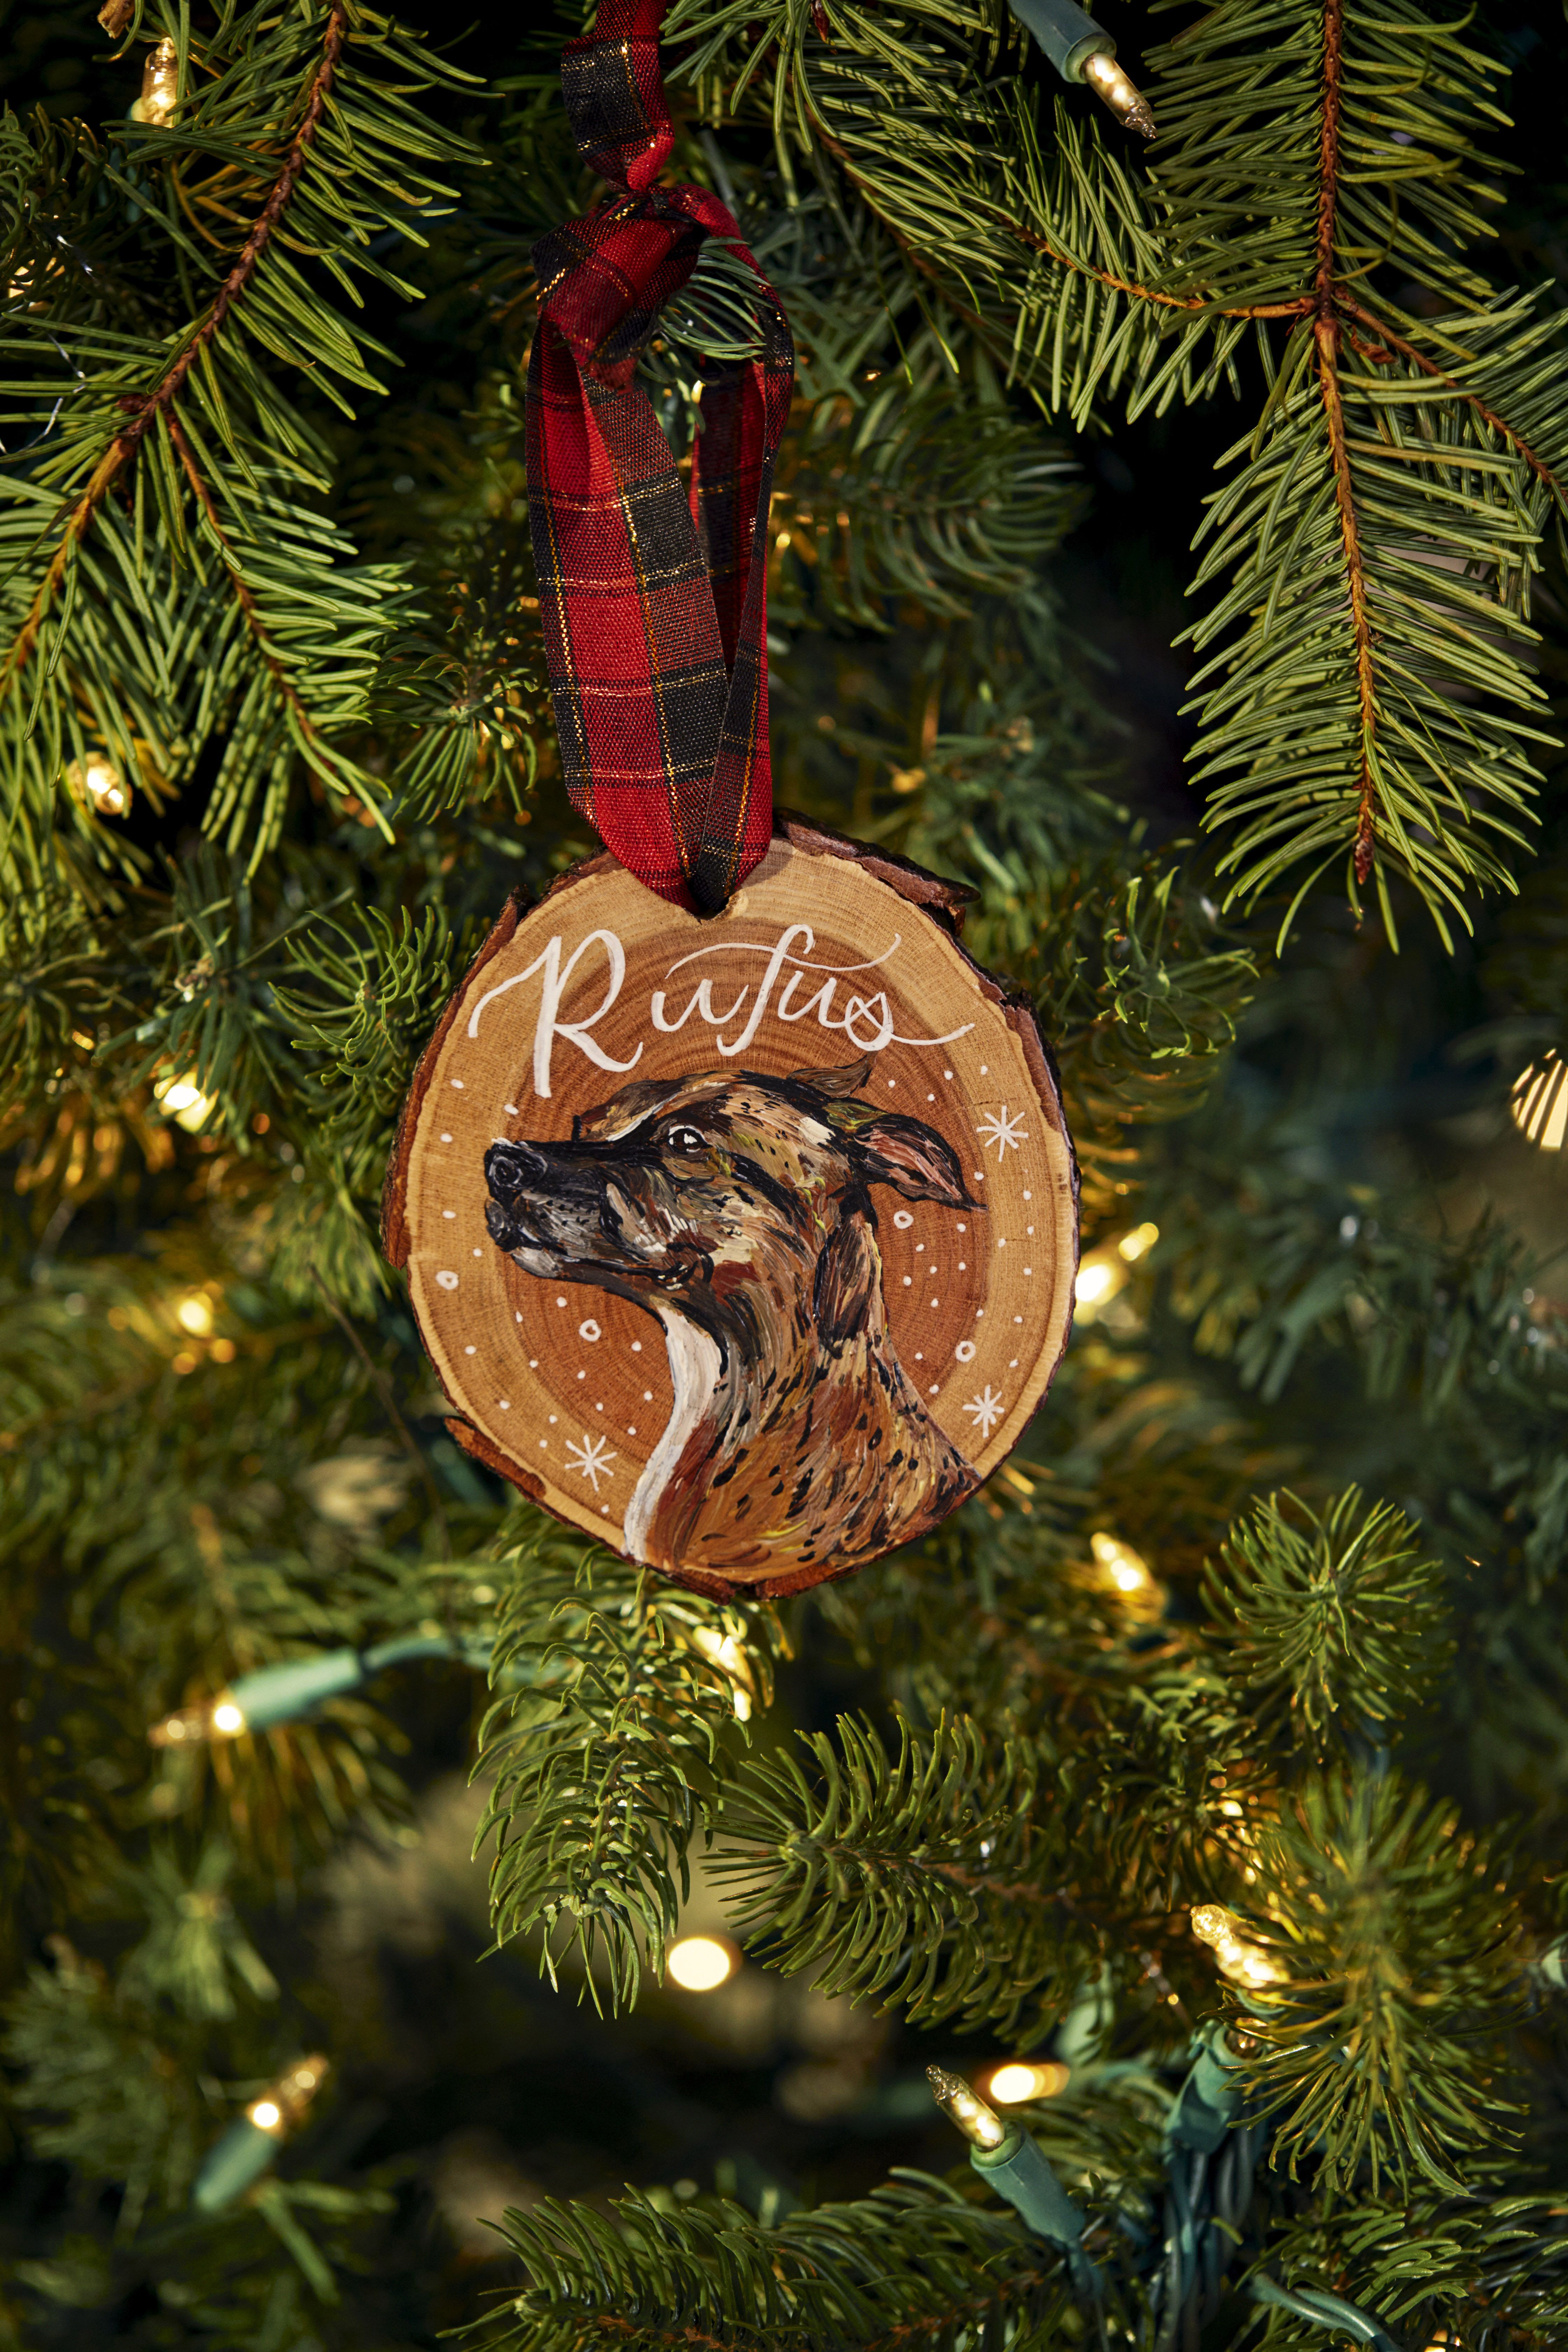 If it can be personalized, there's a 99% chance we're getting it for our pet. Beautiful custom wood Christmas ornament features a hand-drawn illustration of your pet. Find more personalized gifts for all kinds of people and animals on Etsy.